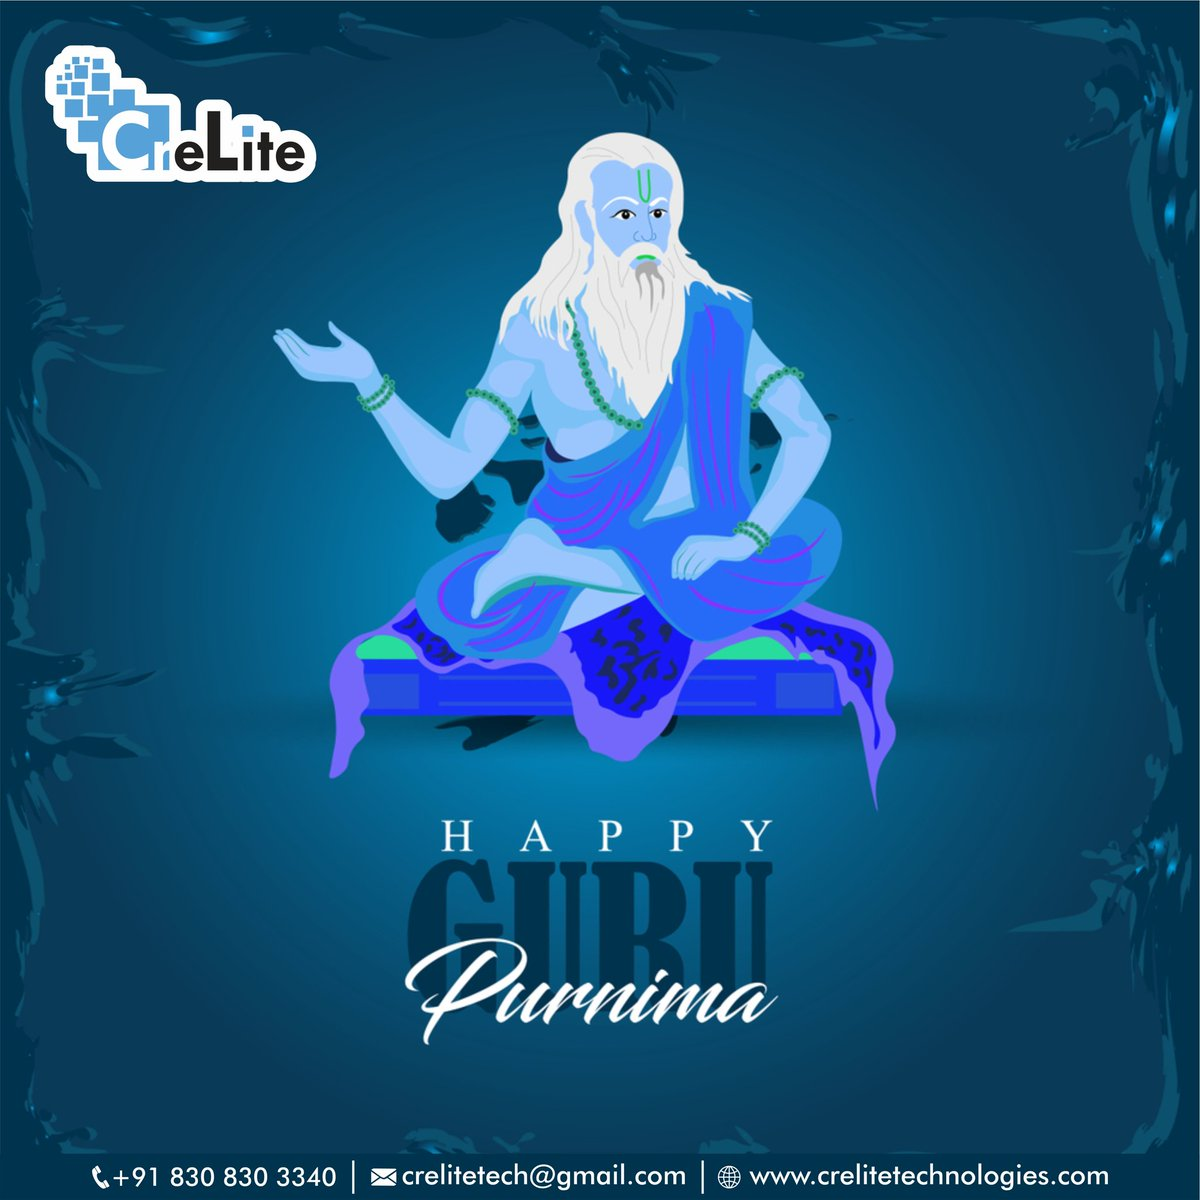 This day recalled our mentor who sacrifices their life to enlighten us from great wisdom and knowledge.  Happy Guru Purnima! . Tag Begins#GuruPurnima #HappyGuruPurnima #GuruPurnima2020 #CreliteTechnologies #DigitalMarketing #ContentMarketing #SocialMediaMarketing #marketingpic.twitter.com/b49259hpyY